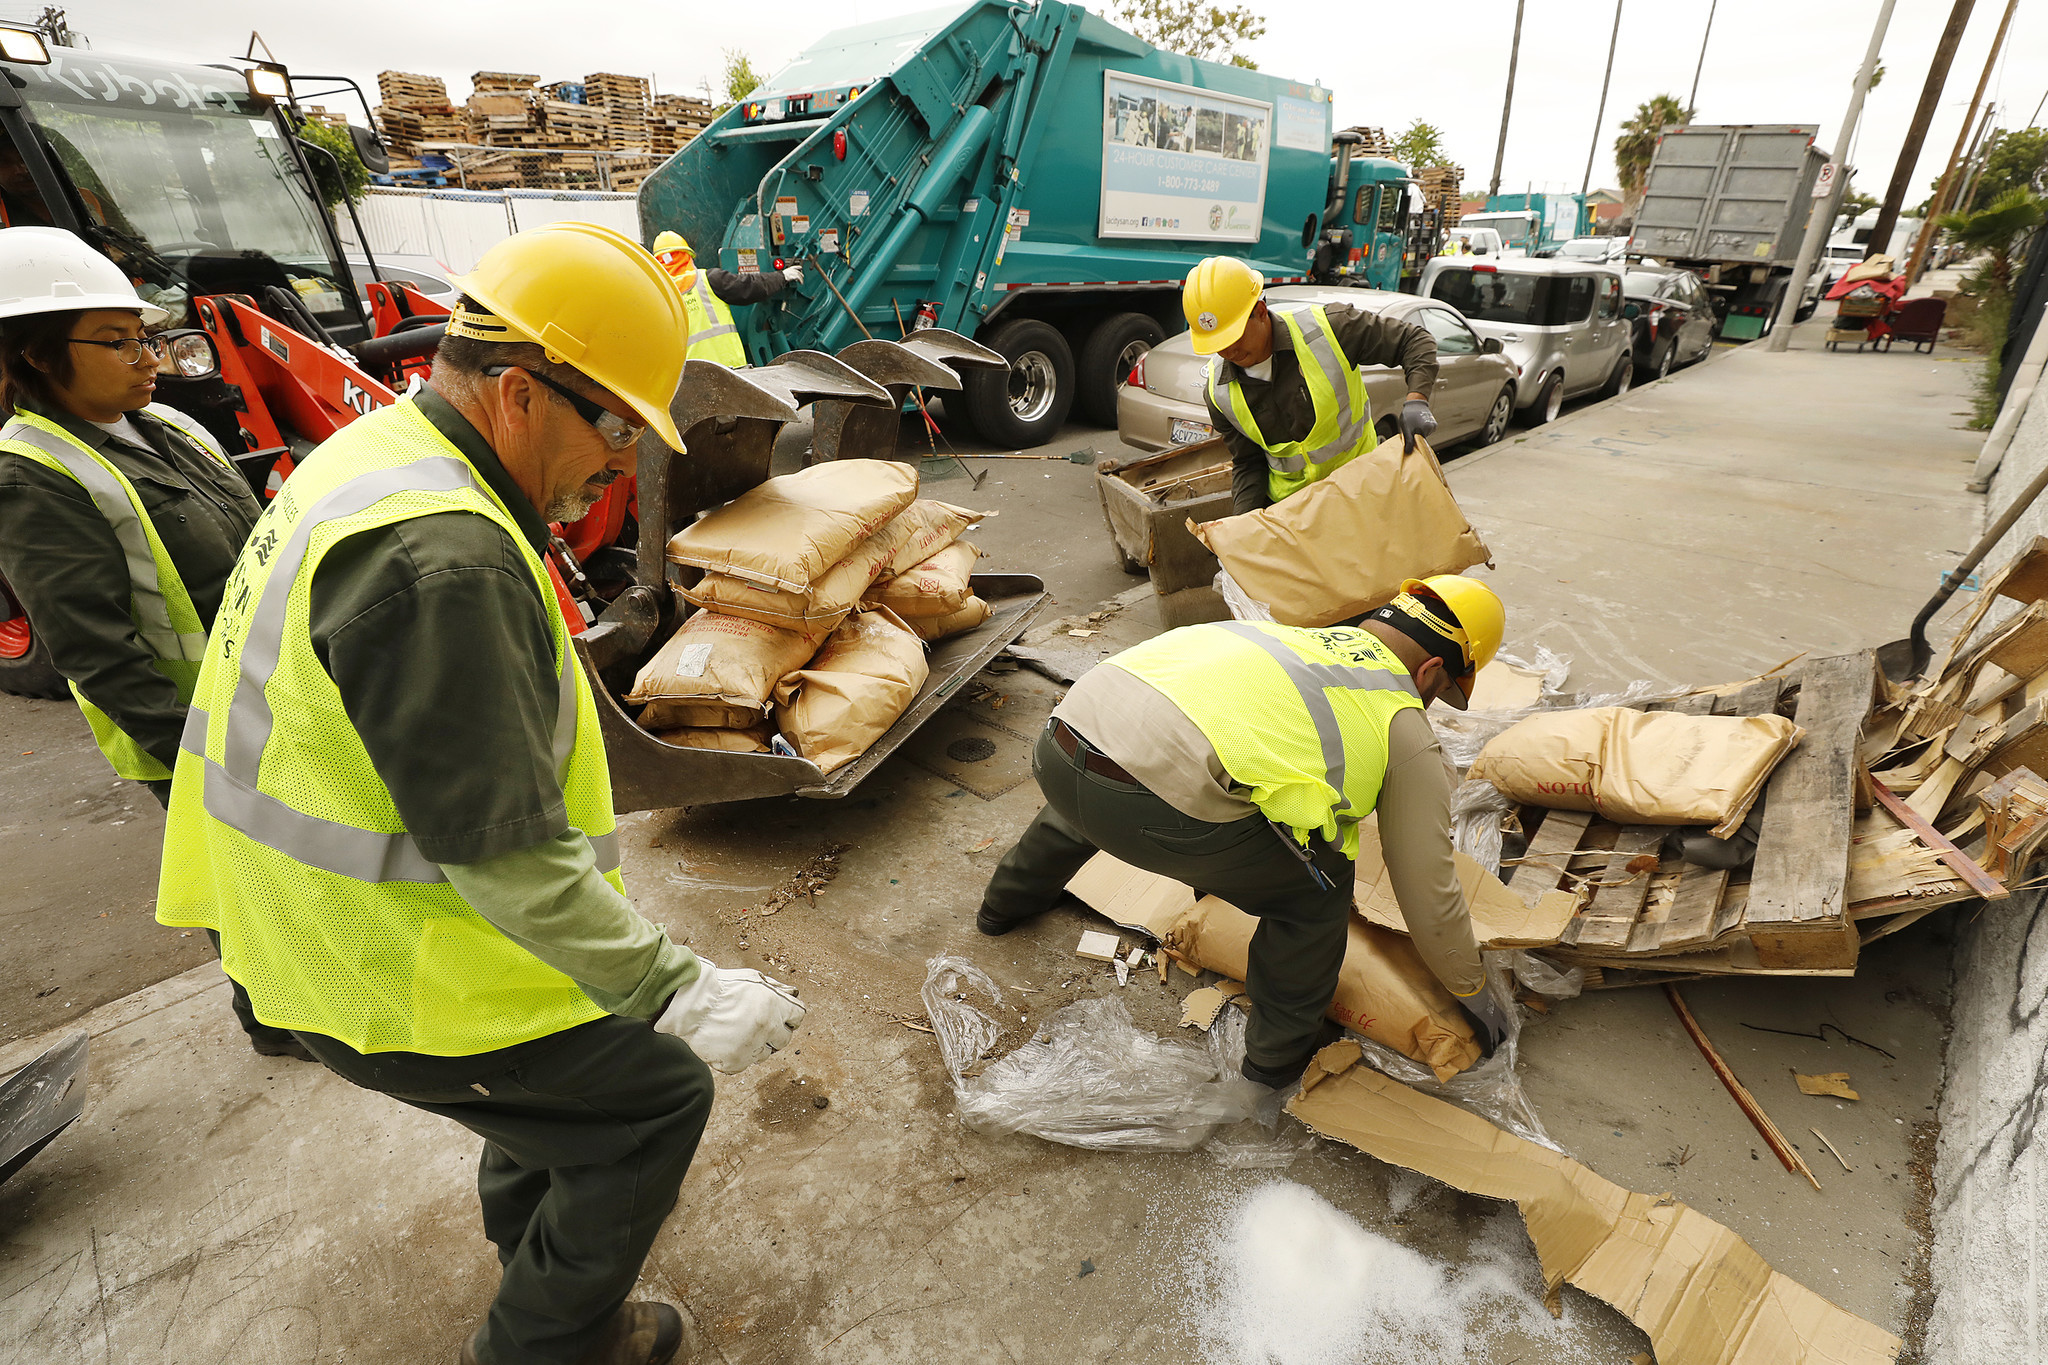 Sanitation crews clean up dumped items